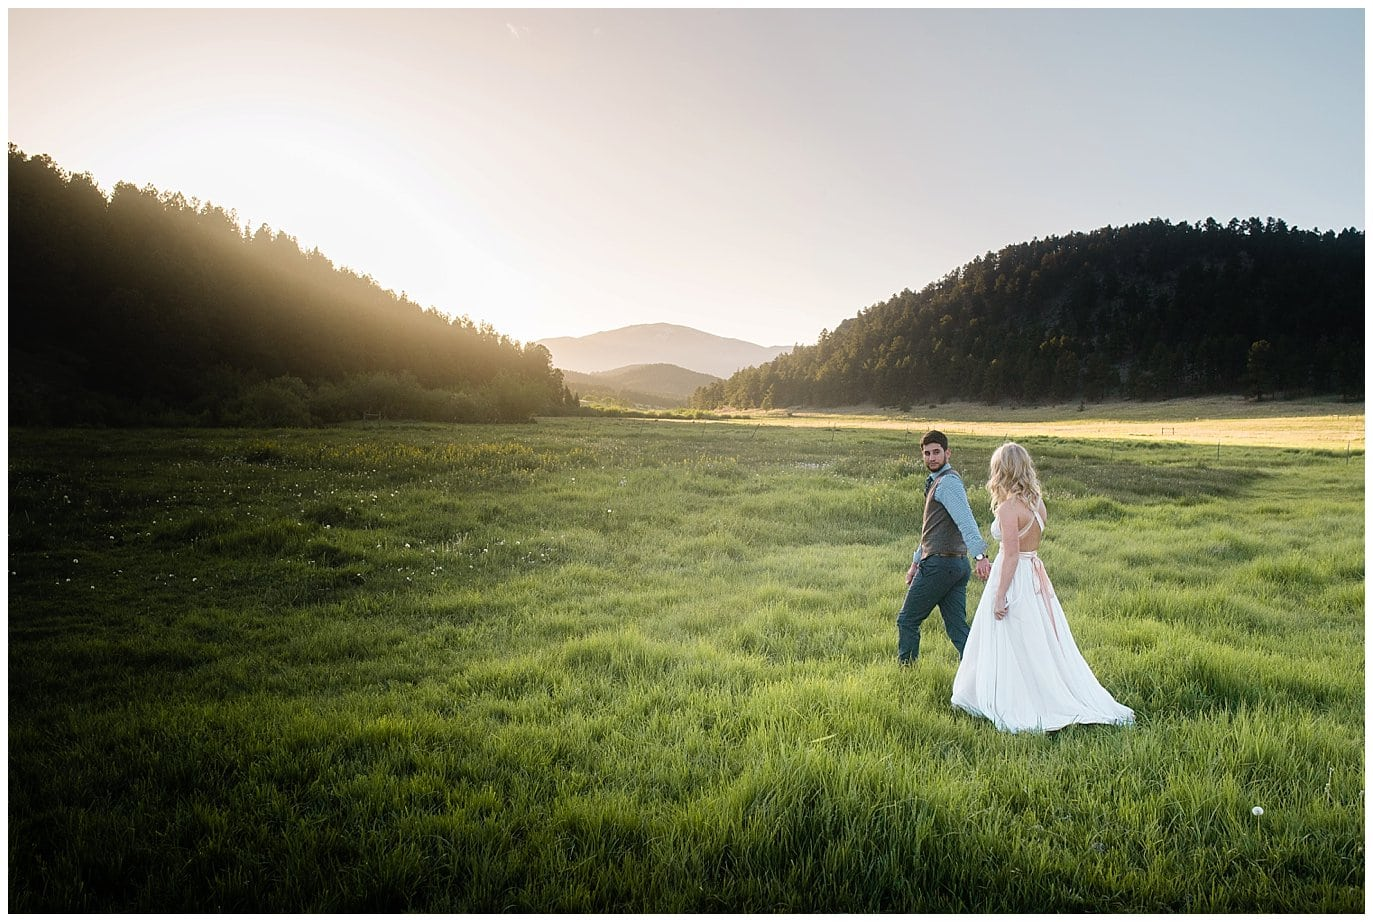 Bride and groom walk in fields at Deer Creek Valley Ranch wedding by Colorado Wedding Photographer Jennie Crate Photographer